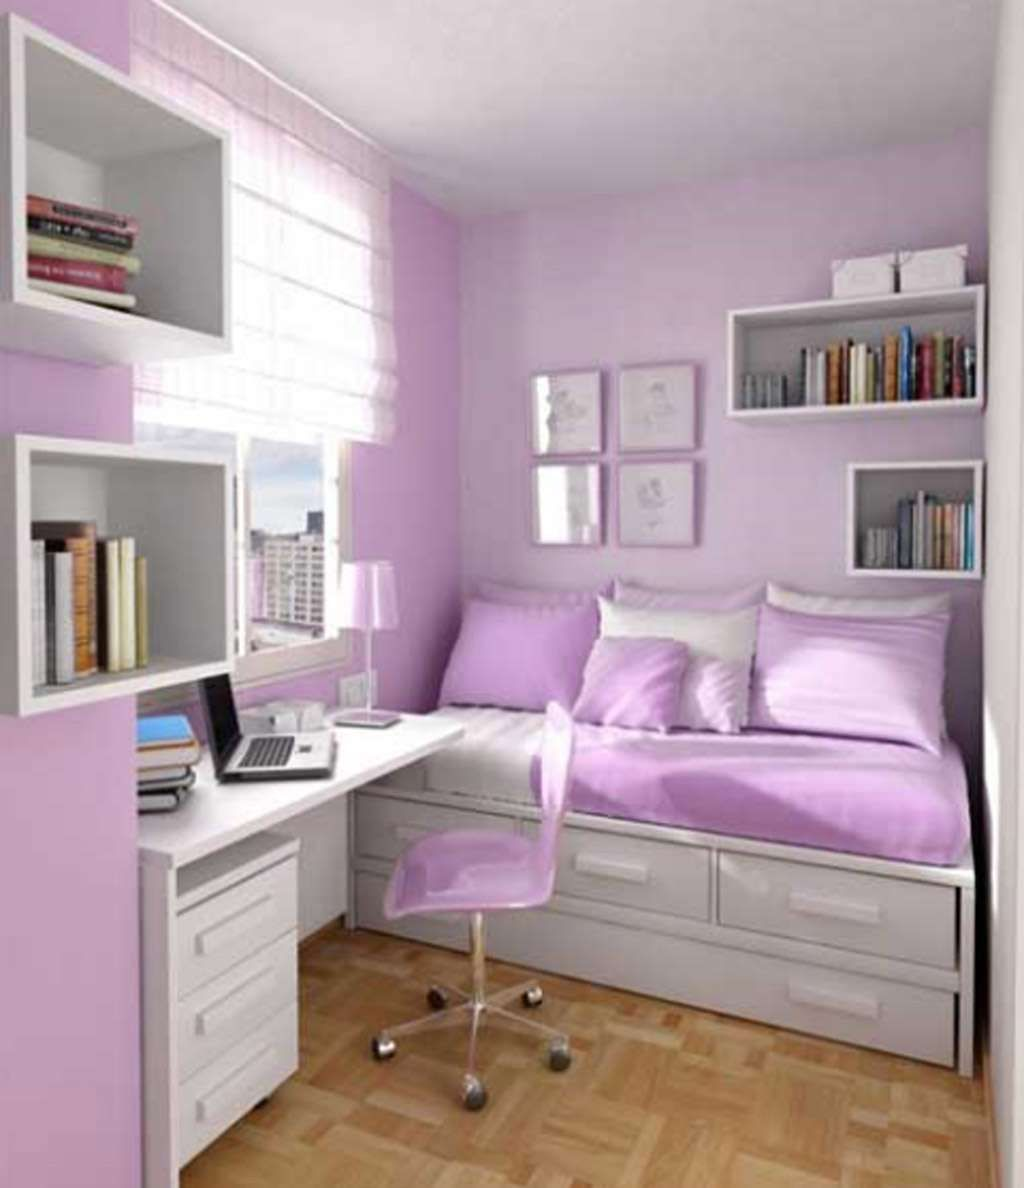 Amazing bedrooms for teenage girls white and light purple color for girl s bedroom